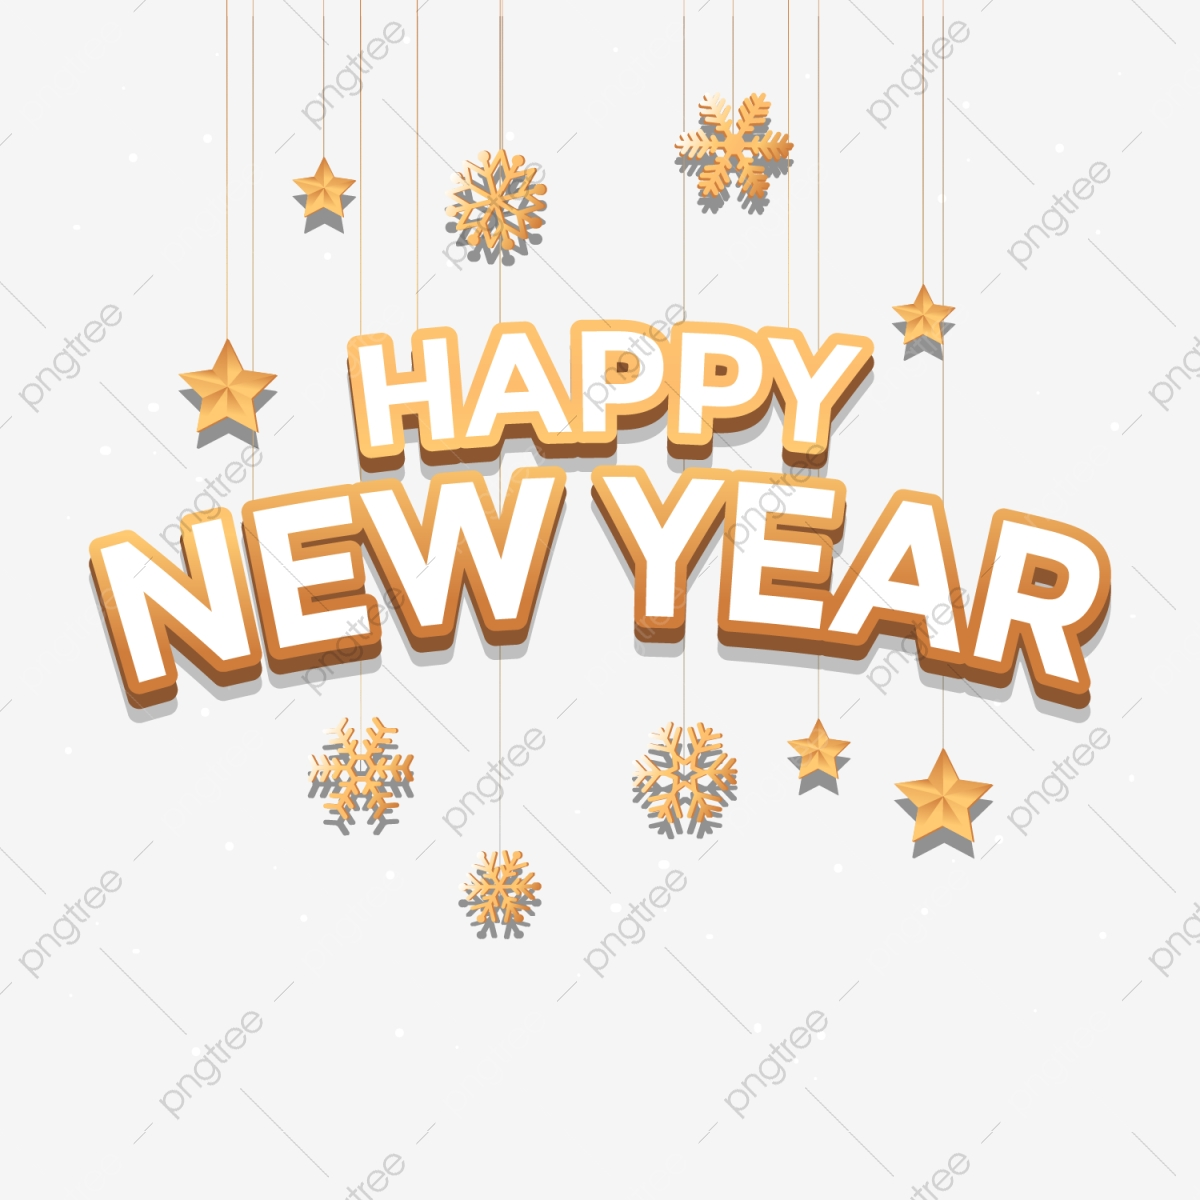 Happy New Year Text Art Artistic Background Png And Vector With Transparent Background For Free Download